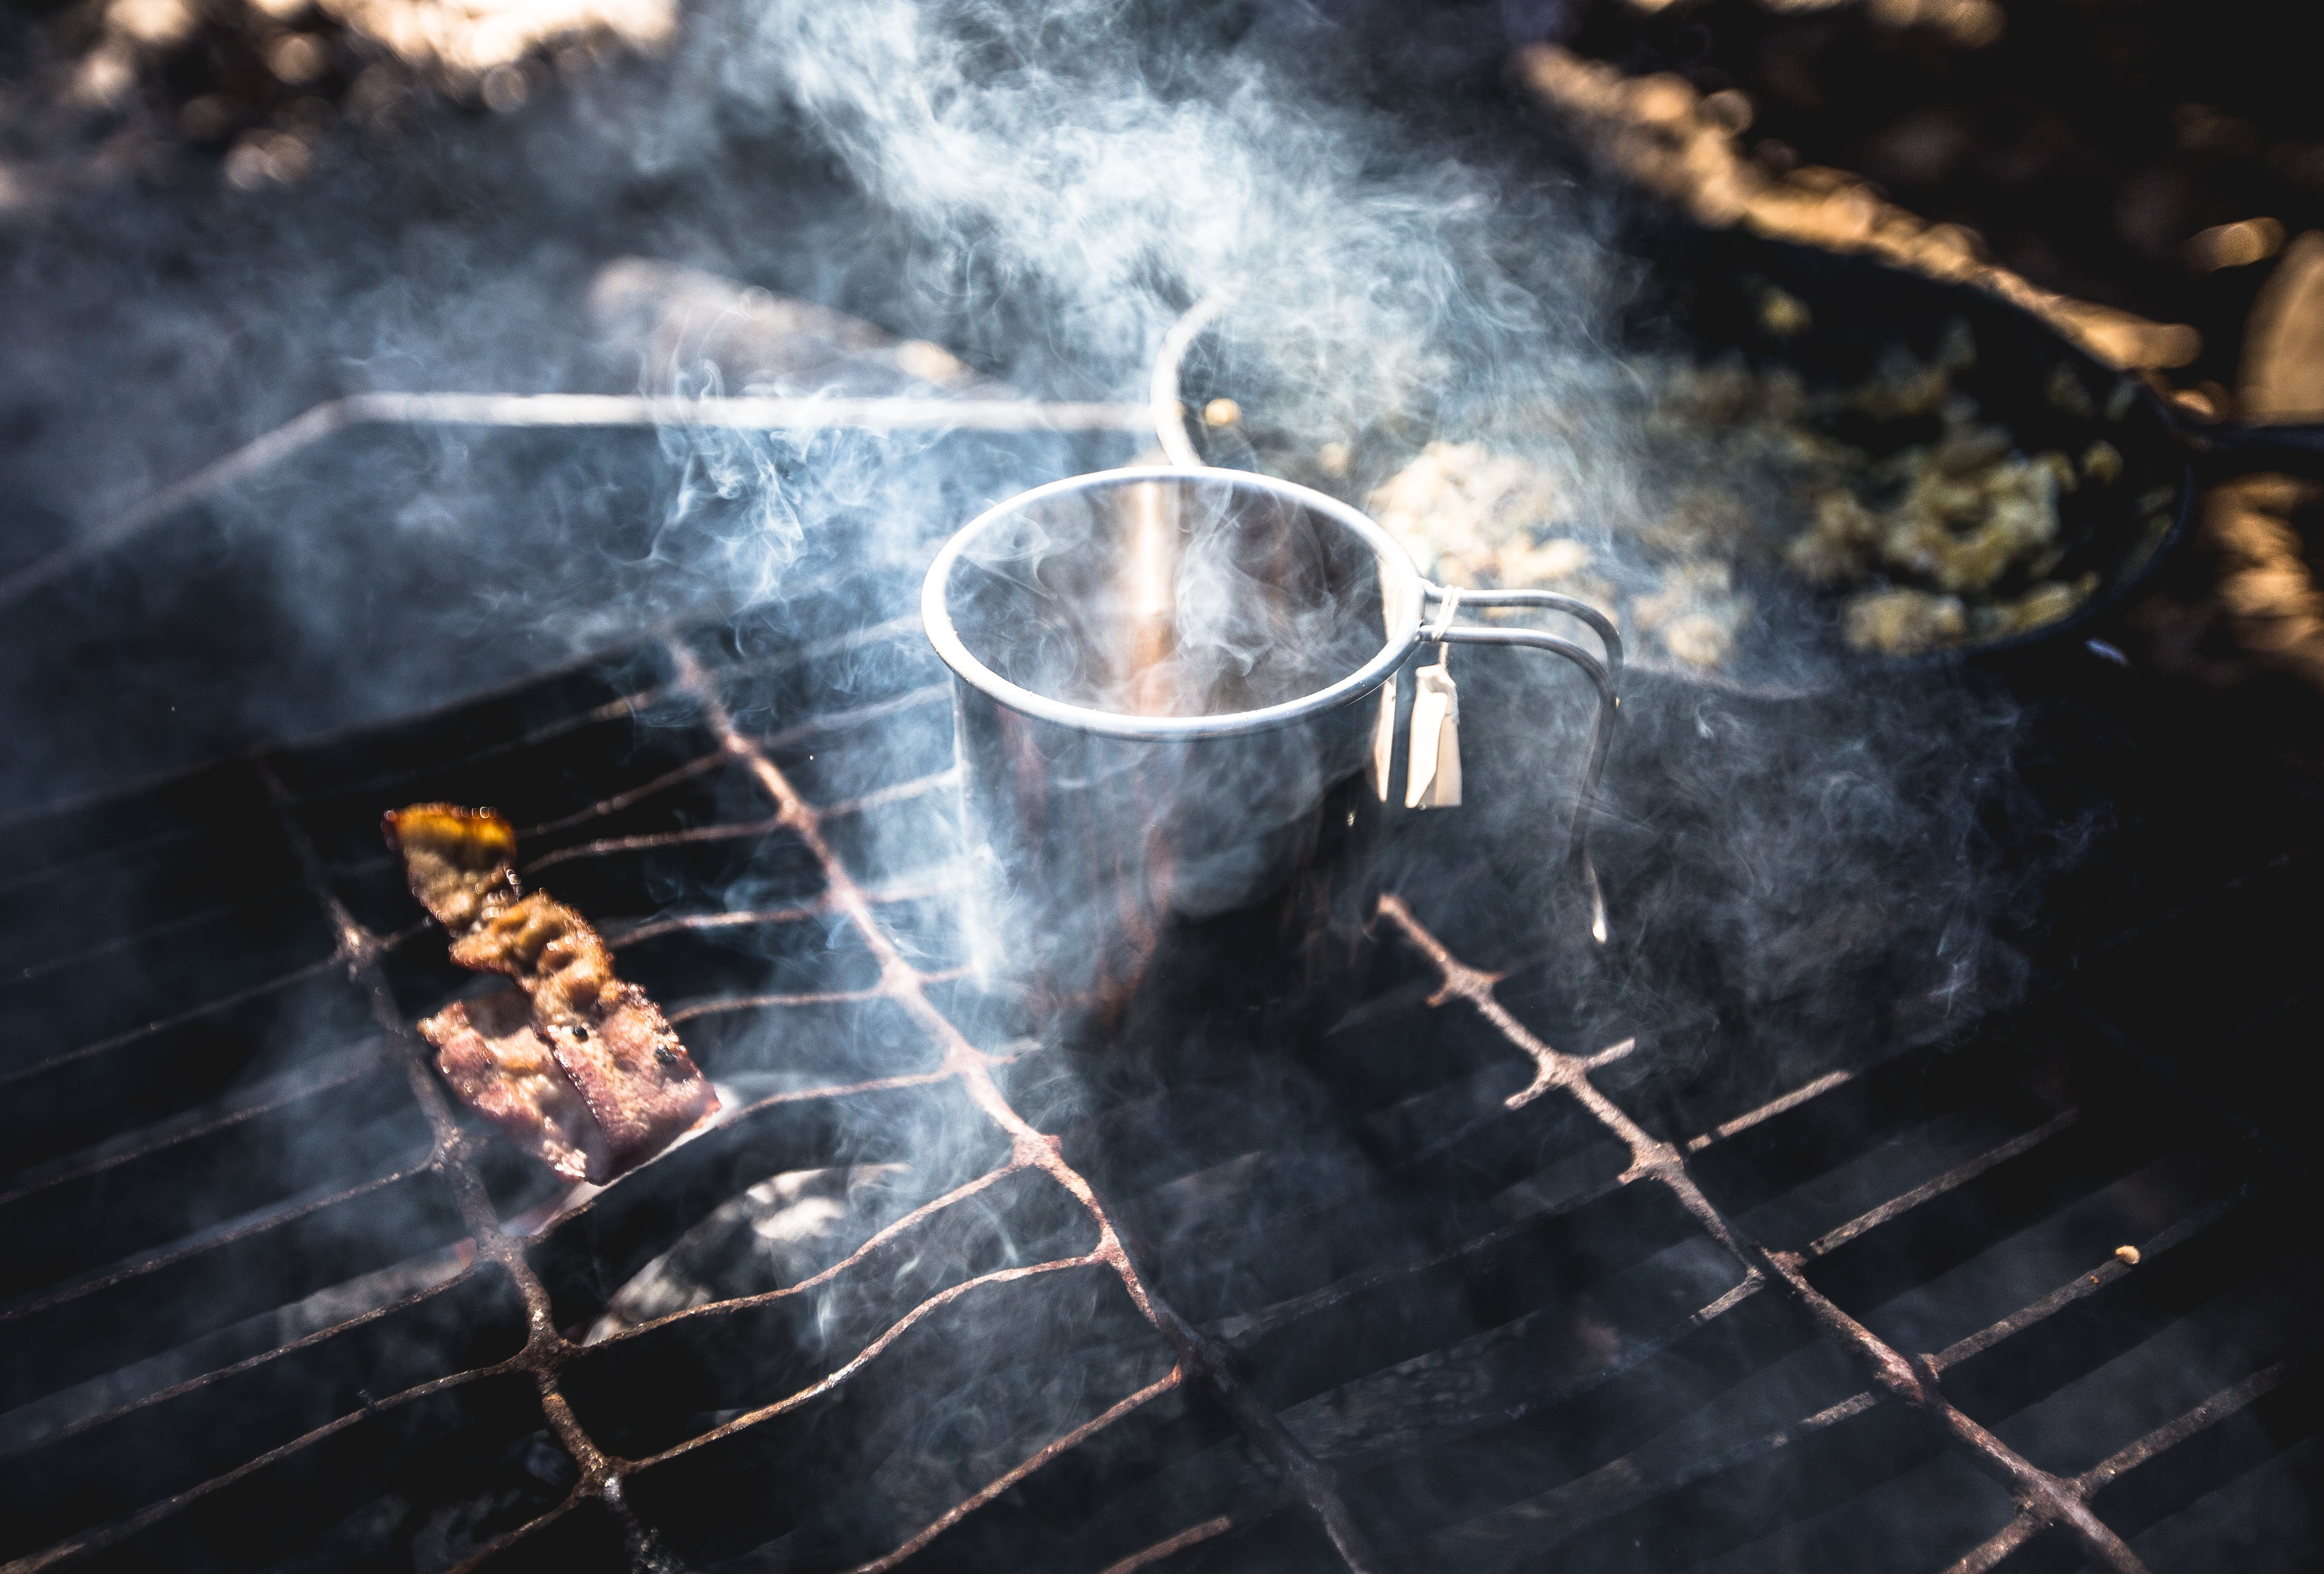 A pan and a mug on an outdoor grill with smoke rising above